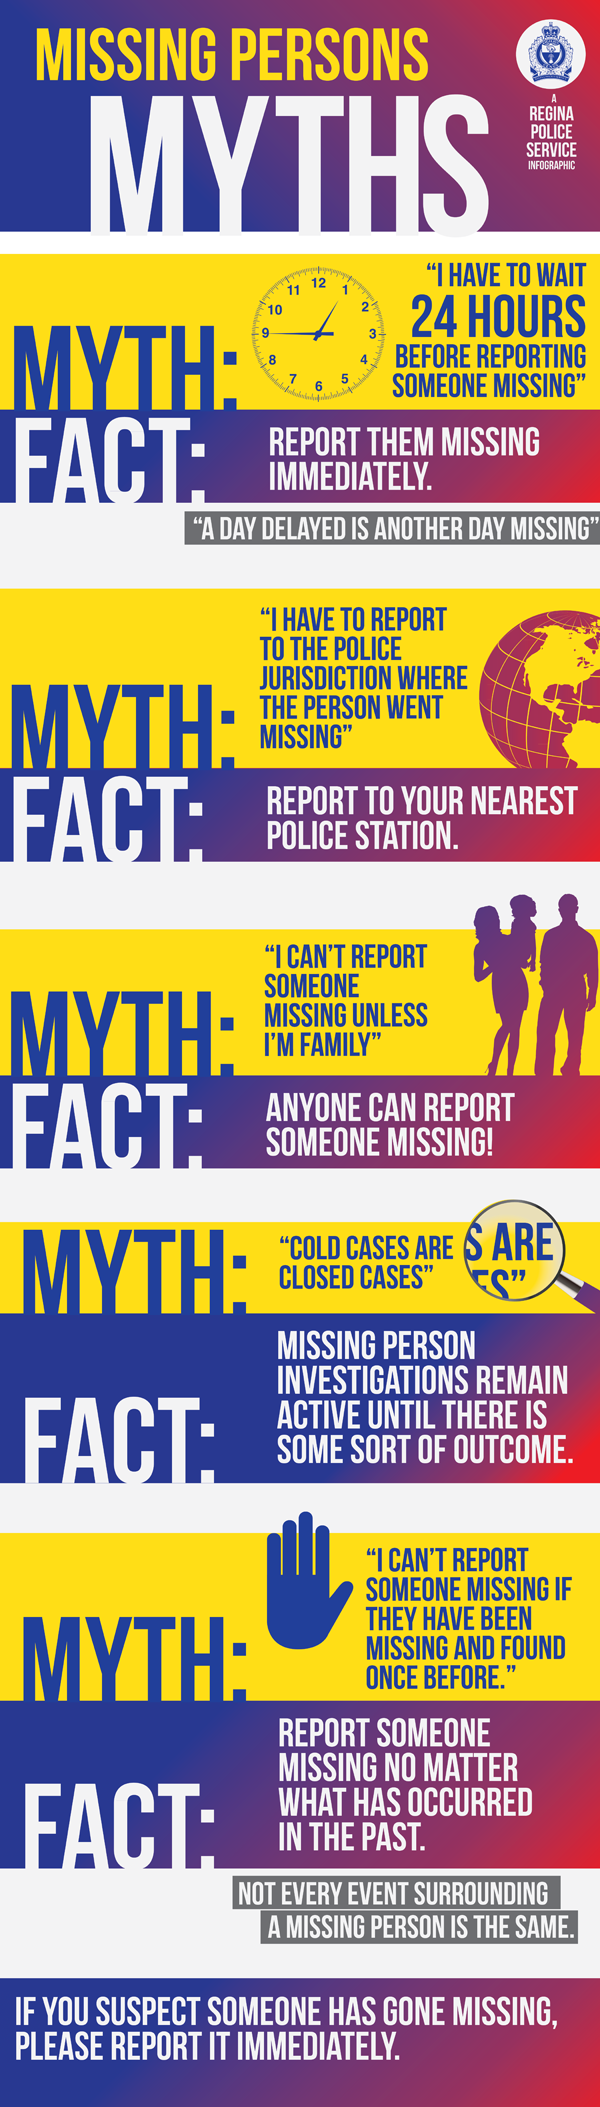 MISSING PERSONS MYTHS-web